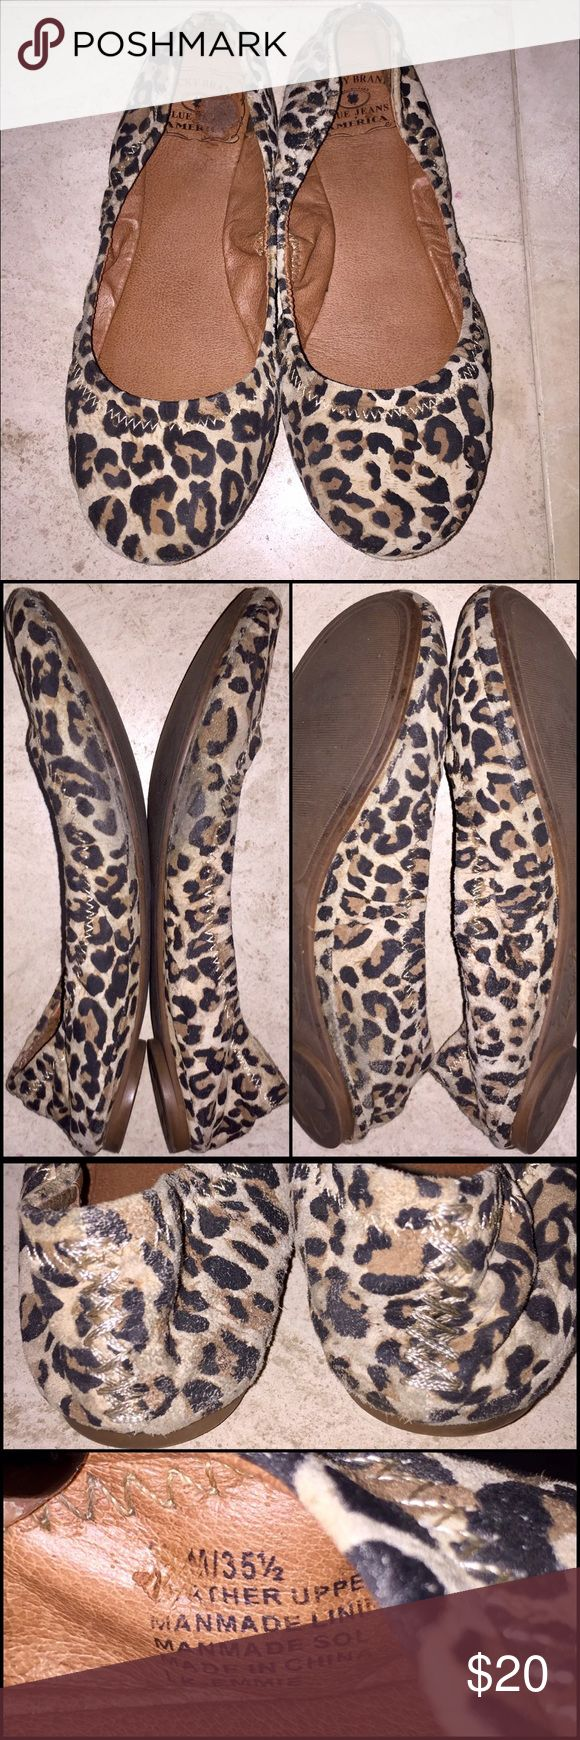 "Lucky Brand Cheetah Flats Lucky Brand Cheetah Flats in size 5.5 come preloved with lots of life left! Super cute leather ""Emmie"" ballet style flats in a leopard print. So comfy and cute. The most wear is on the sides (see pics). Price reflected and price firm as I'm happy to keep and wear. My prices fluctuate from time to time. Catch items when the prices are low!❤️ Lucky Brand Shoes Flats & Loafers"